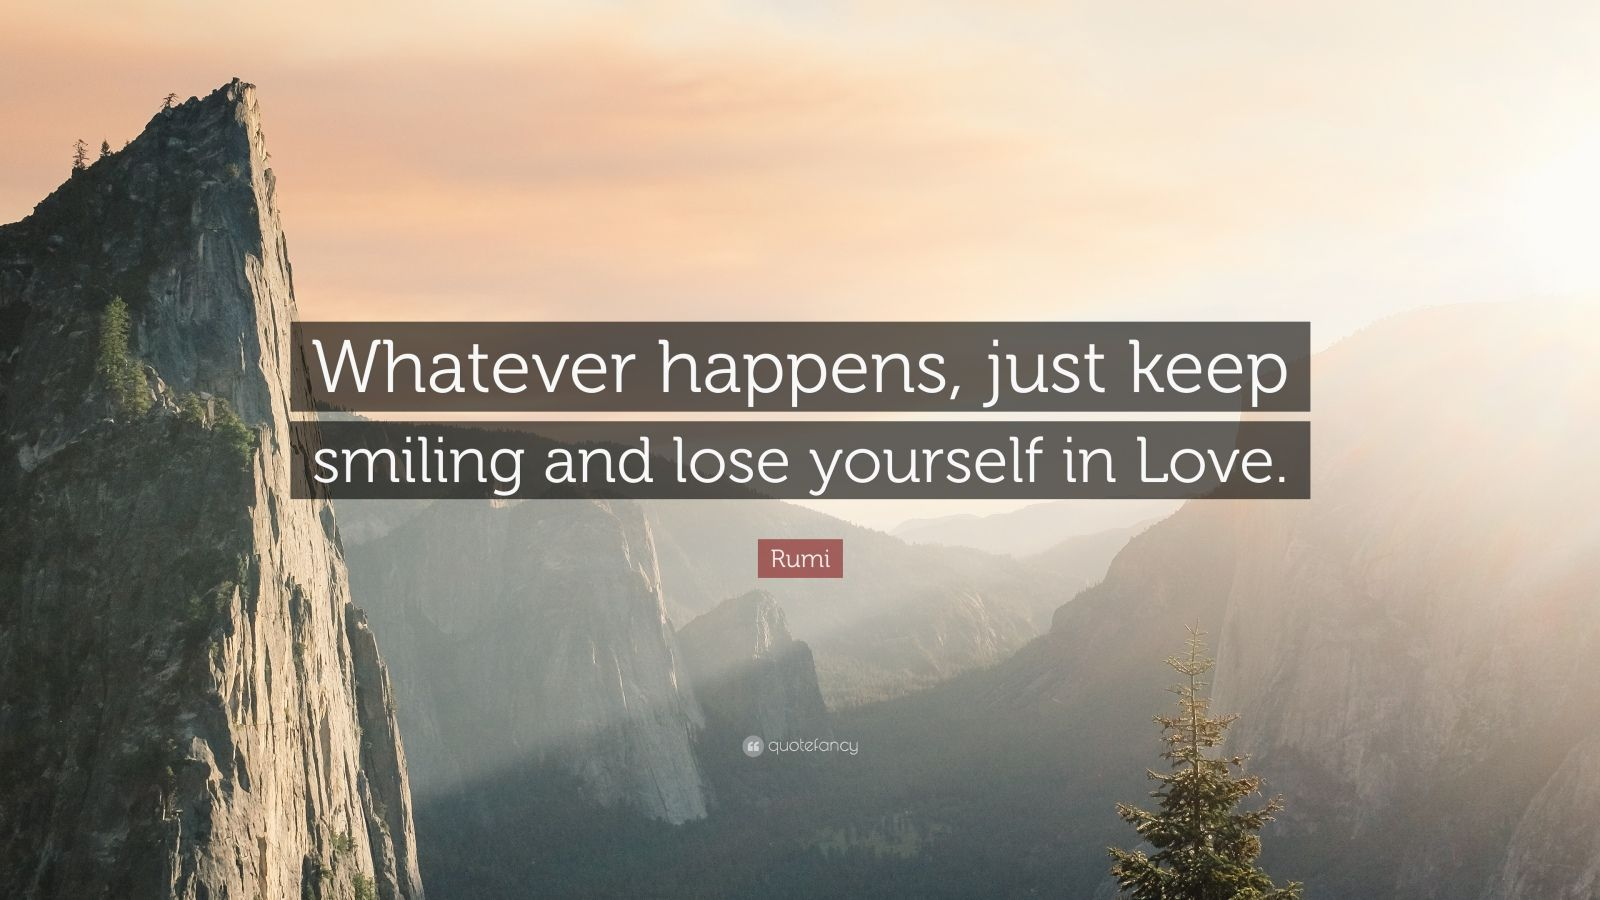 Eleanor Roosevelt Quote Wallpaper Consent Rumi Quote Whatever Happens Just Keep Smiling And Lose